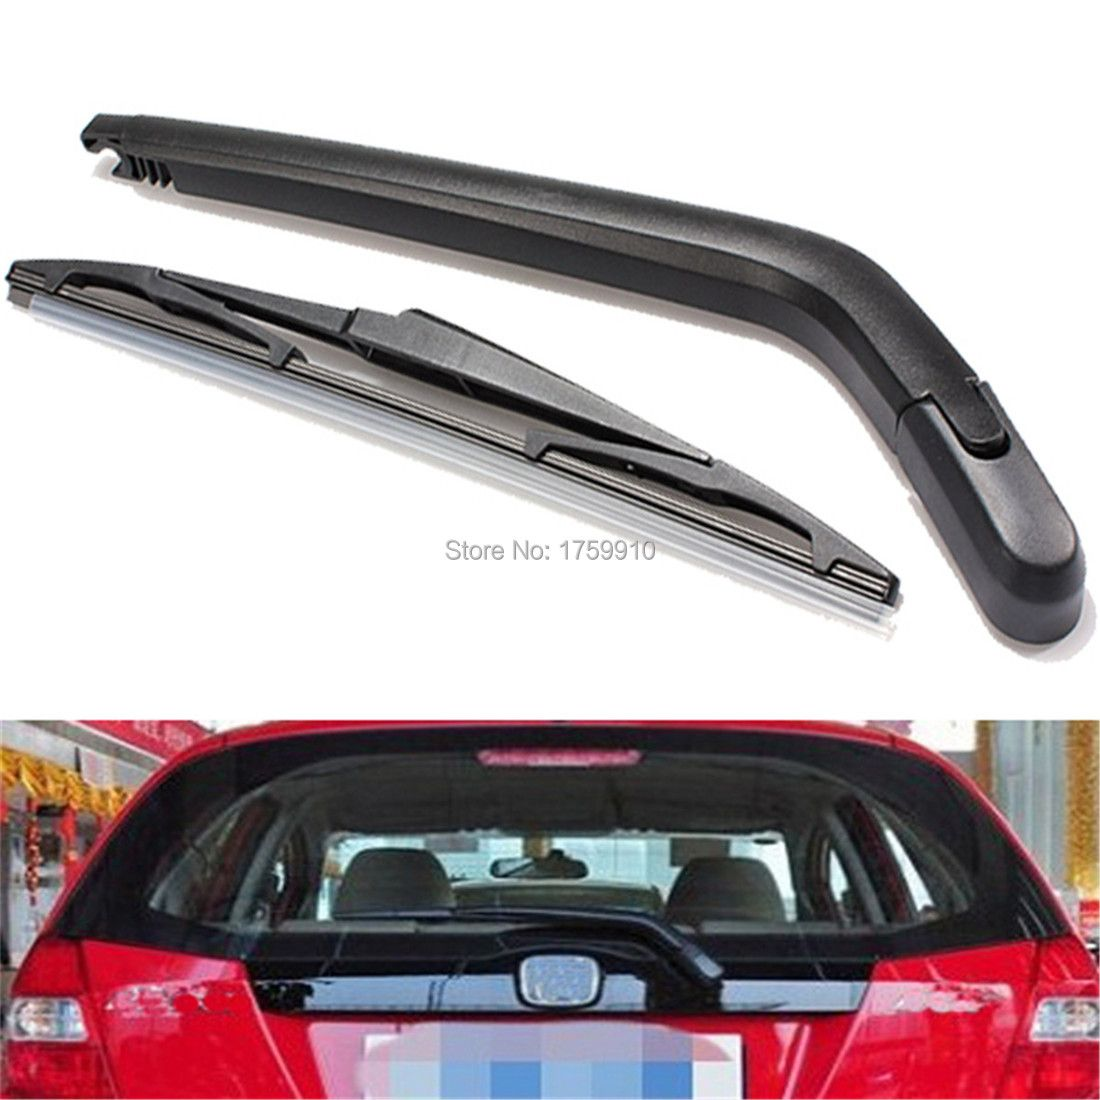 New Car Windscreen Rear Wiper Arm And Blade For Toyota Yaris/for Vitz 1999 to 2005